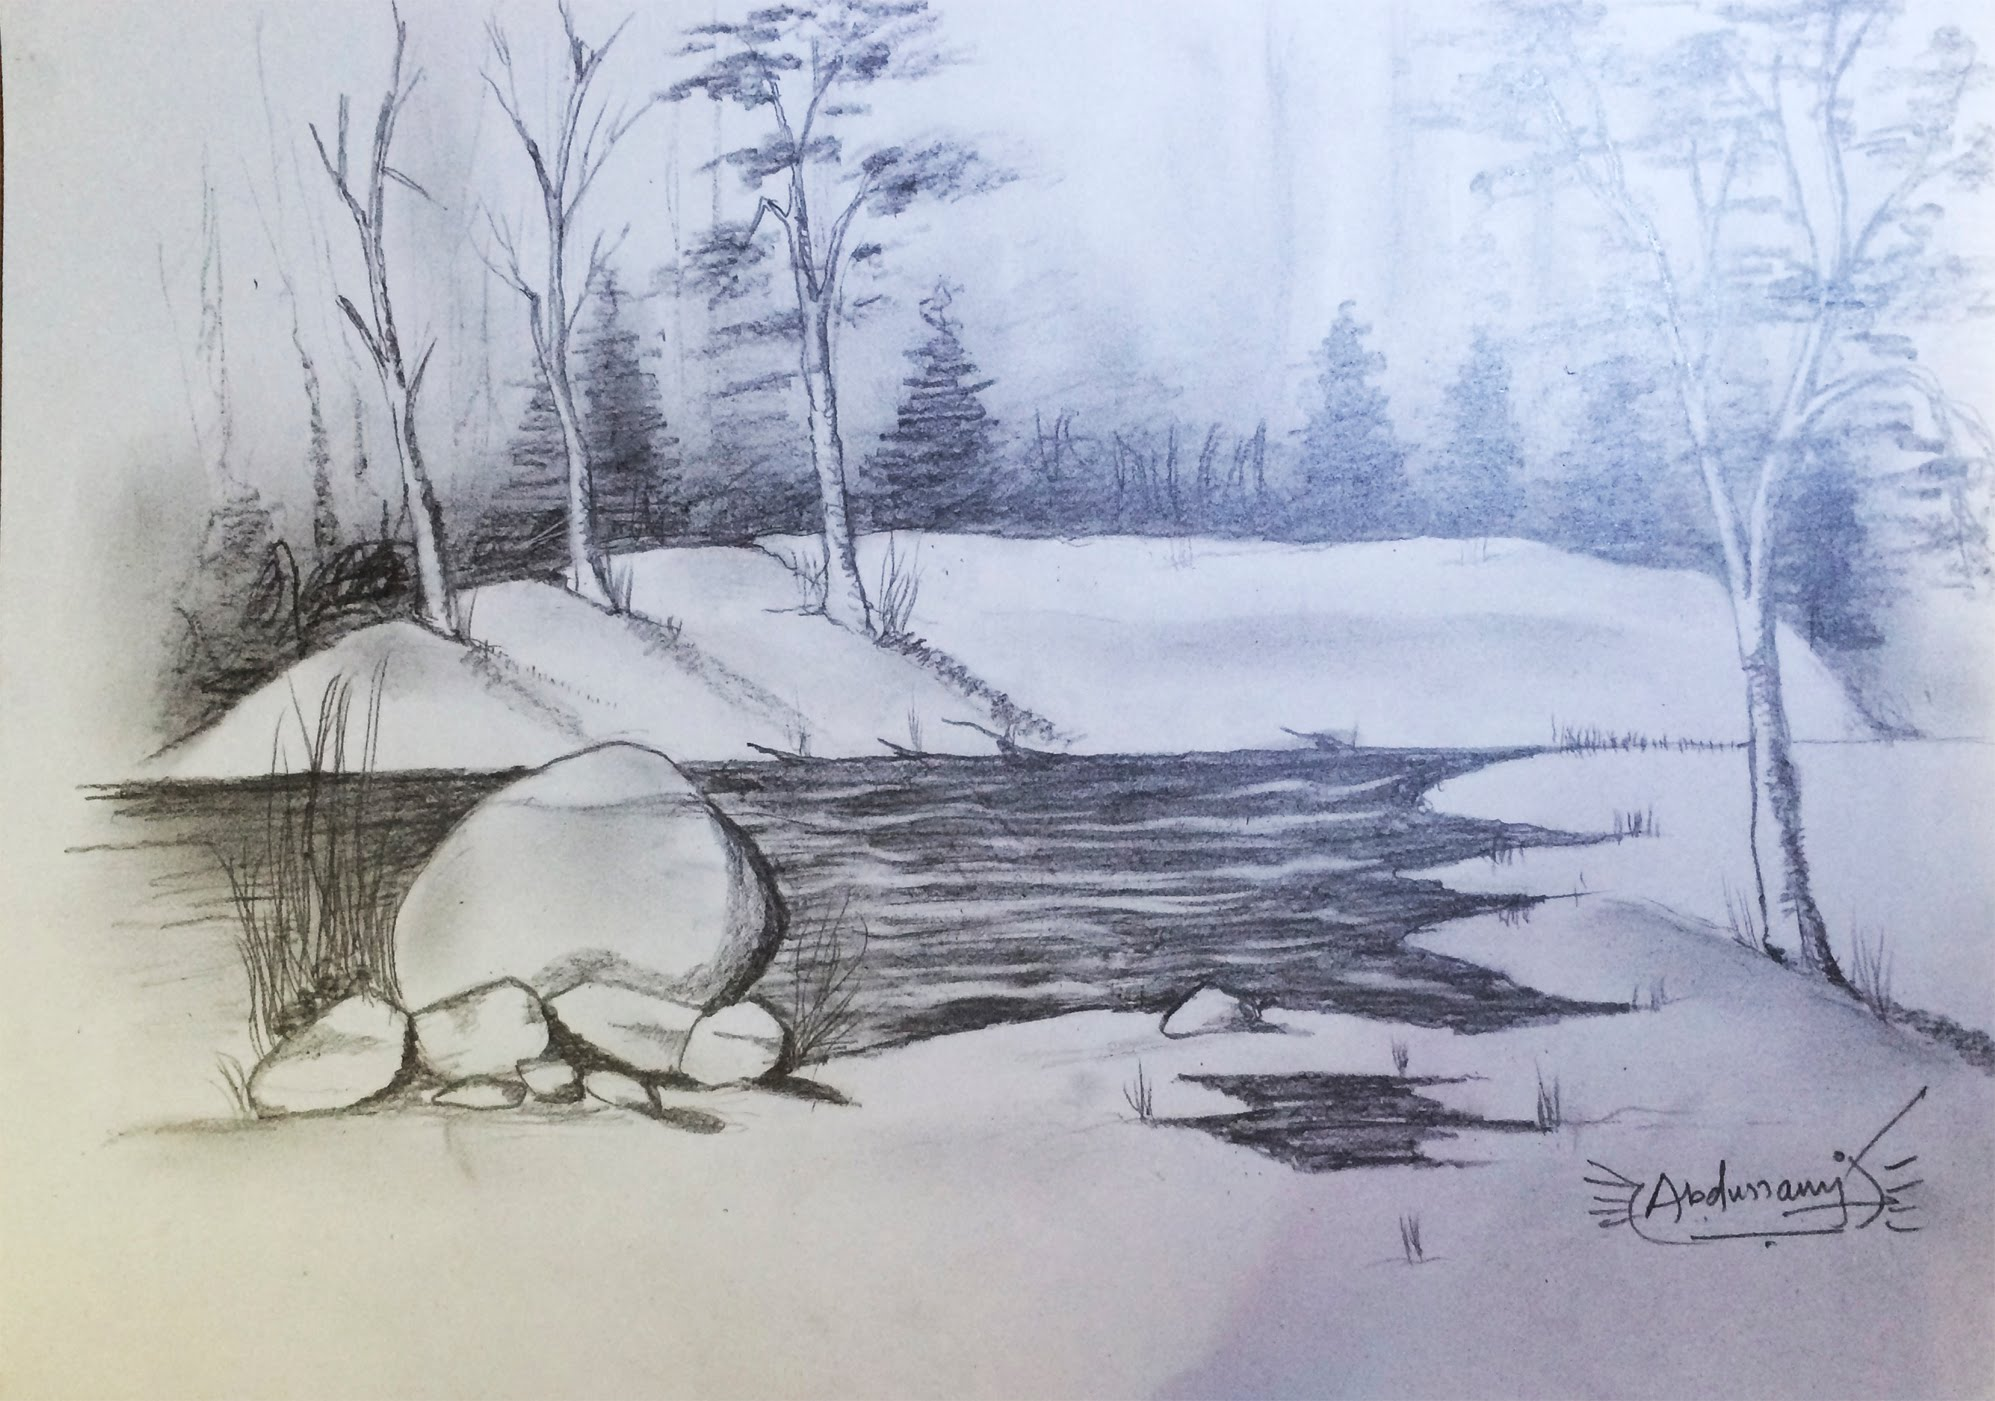 Drawn scenery pencil sketching Sketches scenery pencil sketches scenery